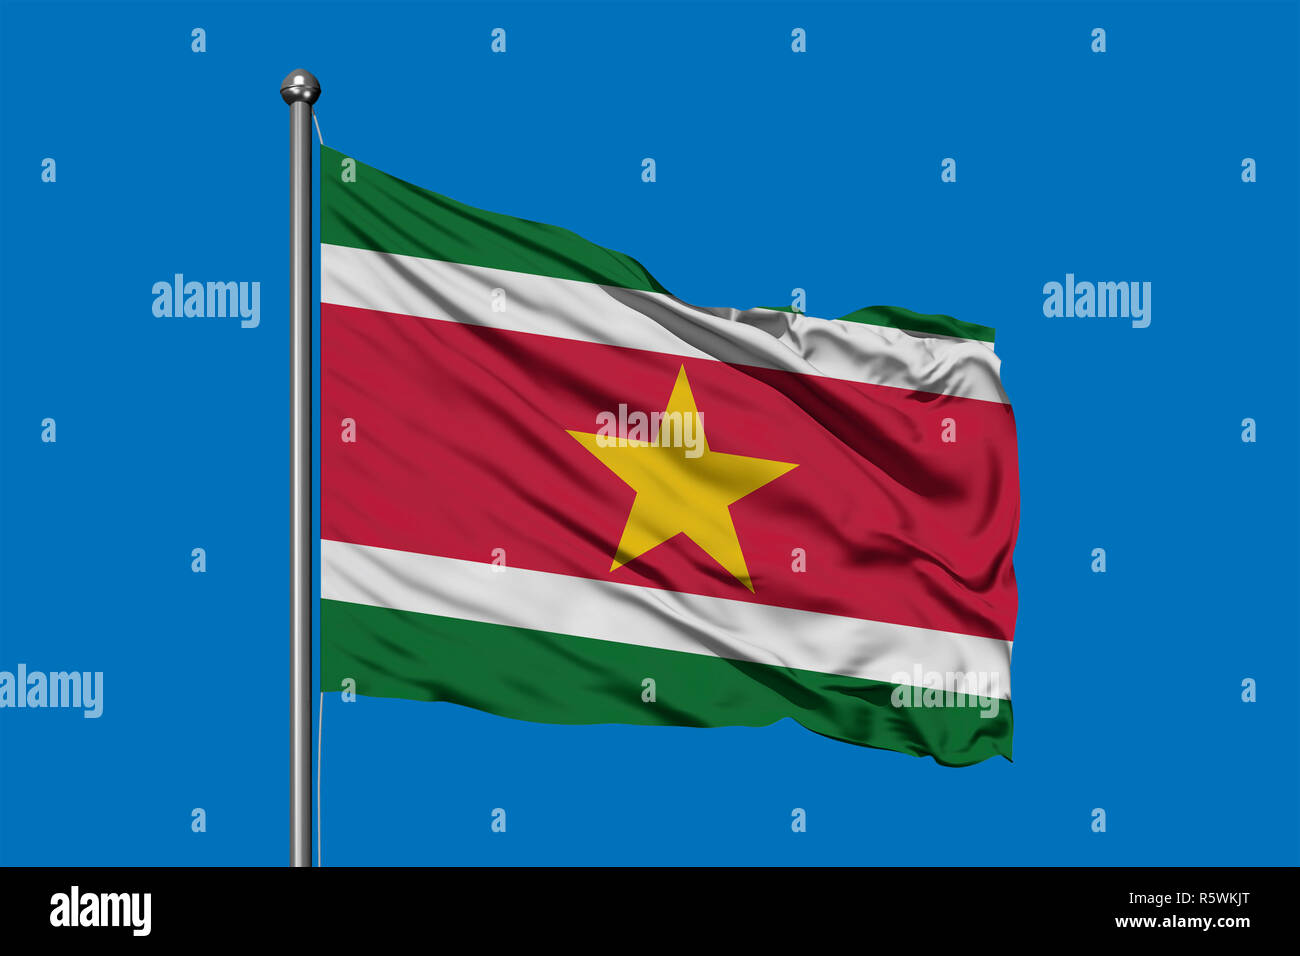 Flag of Suriname waving in the wind against deep blue sky. Surinamese flag. - Stock Image